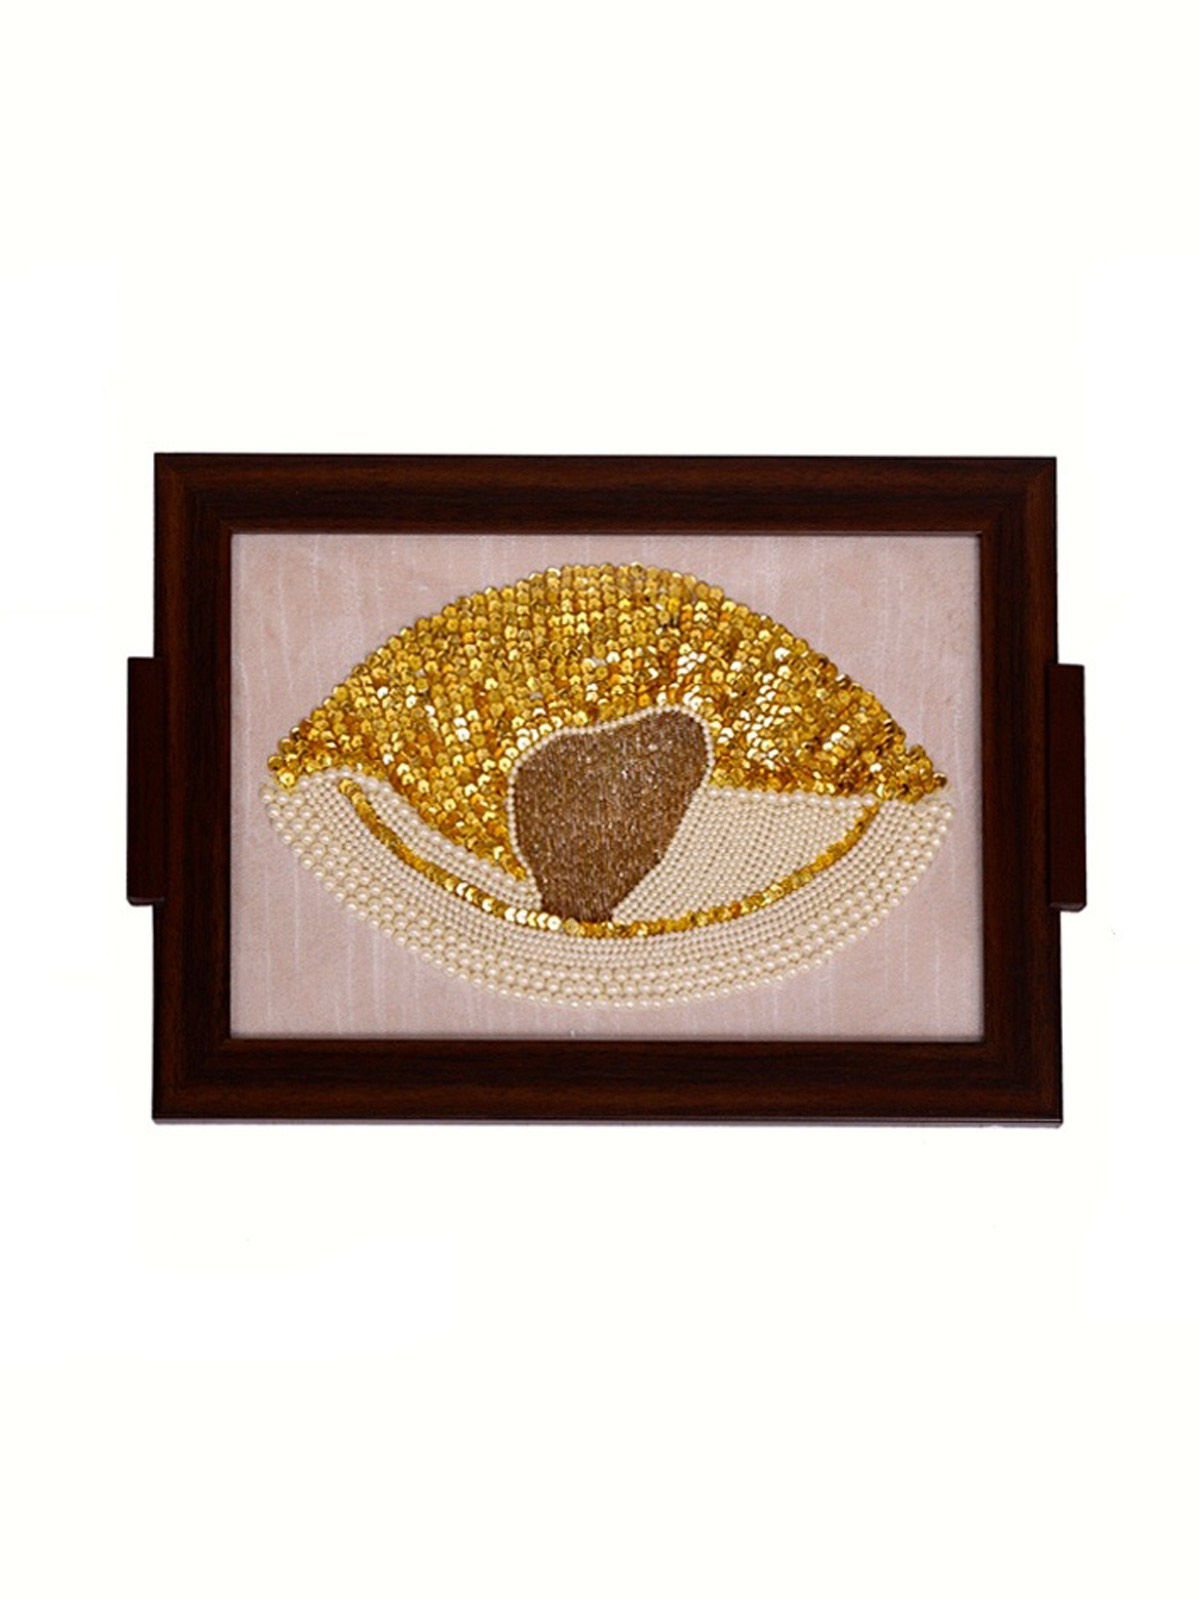 Hand Embroidered Pearl Design Tray For Tea Food Server Dishes